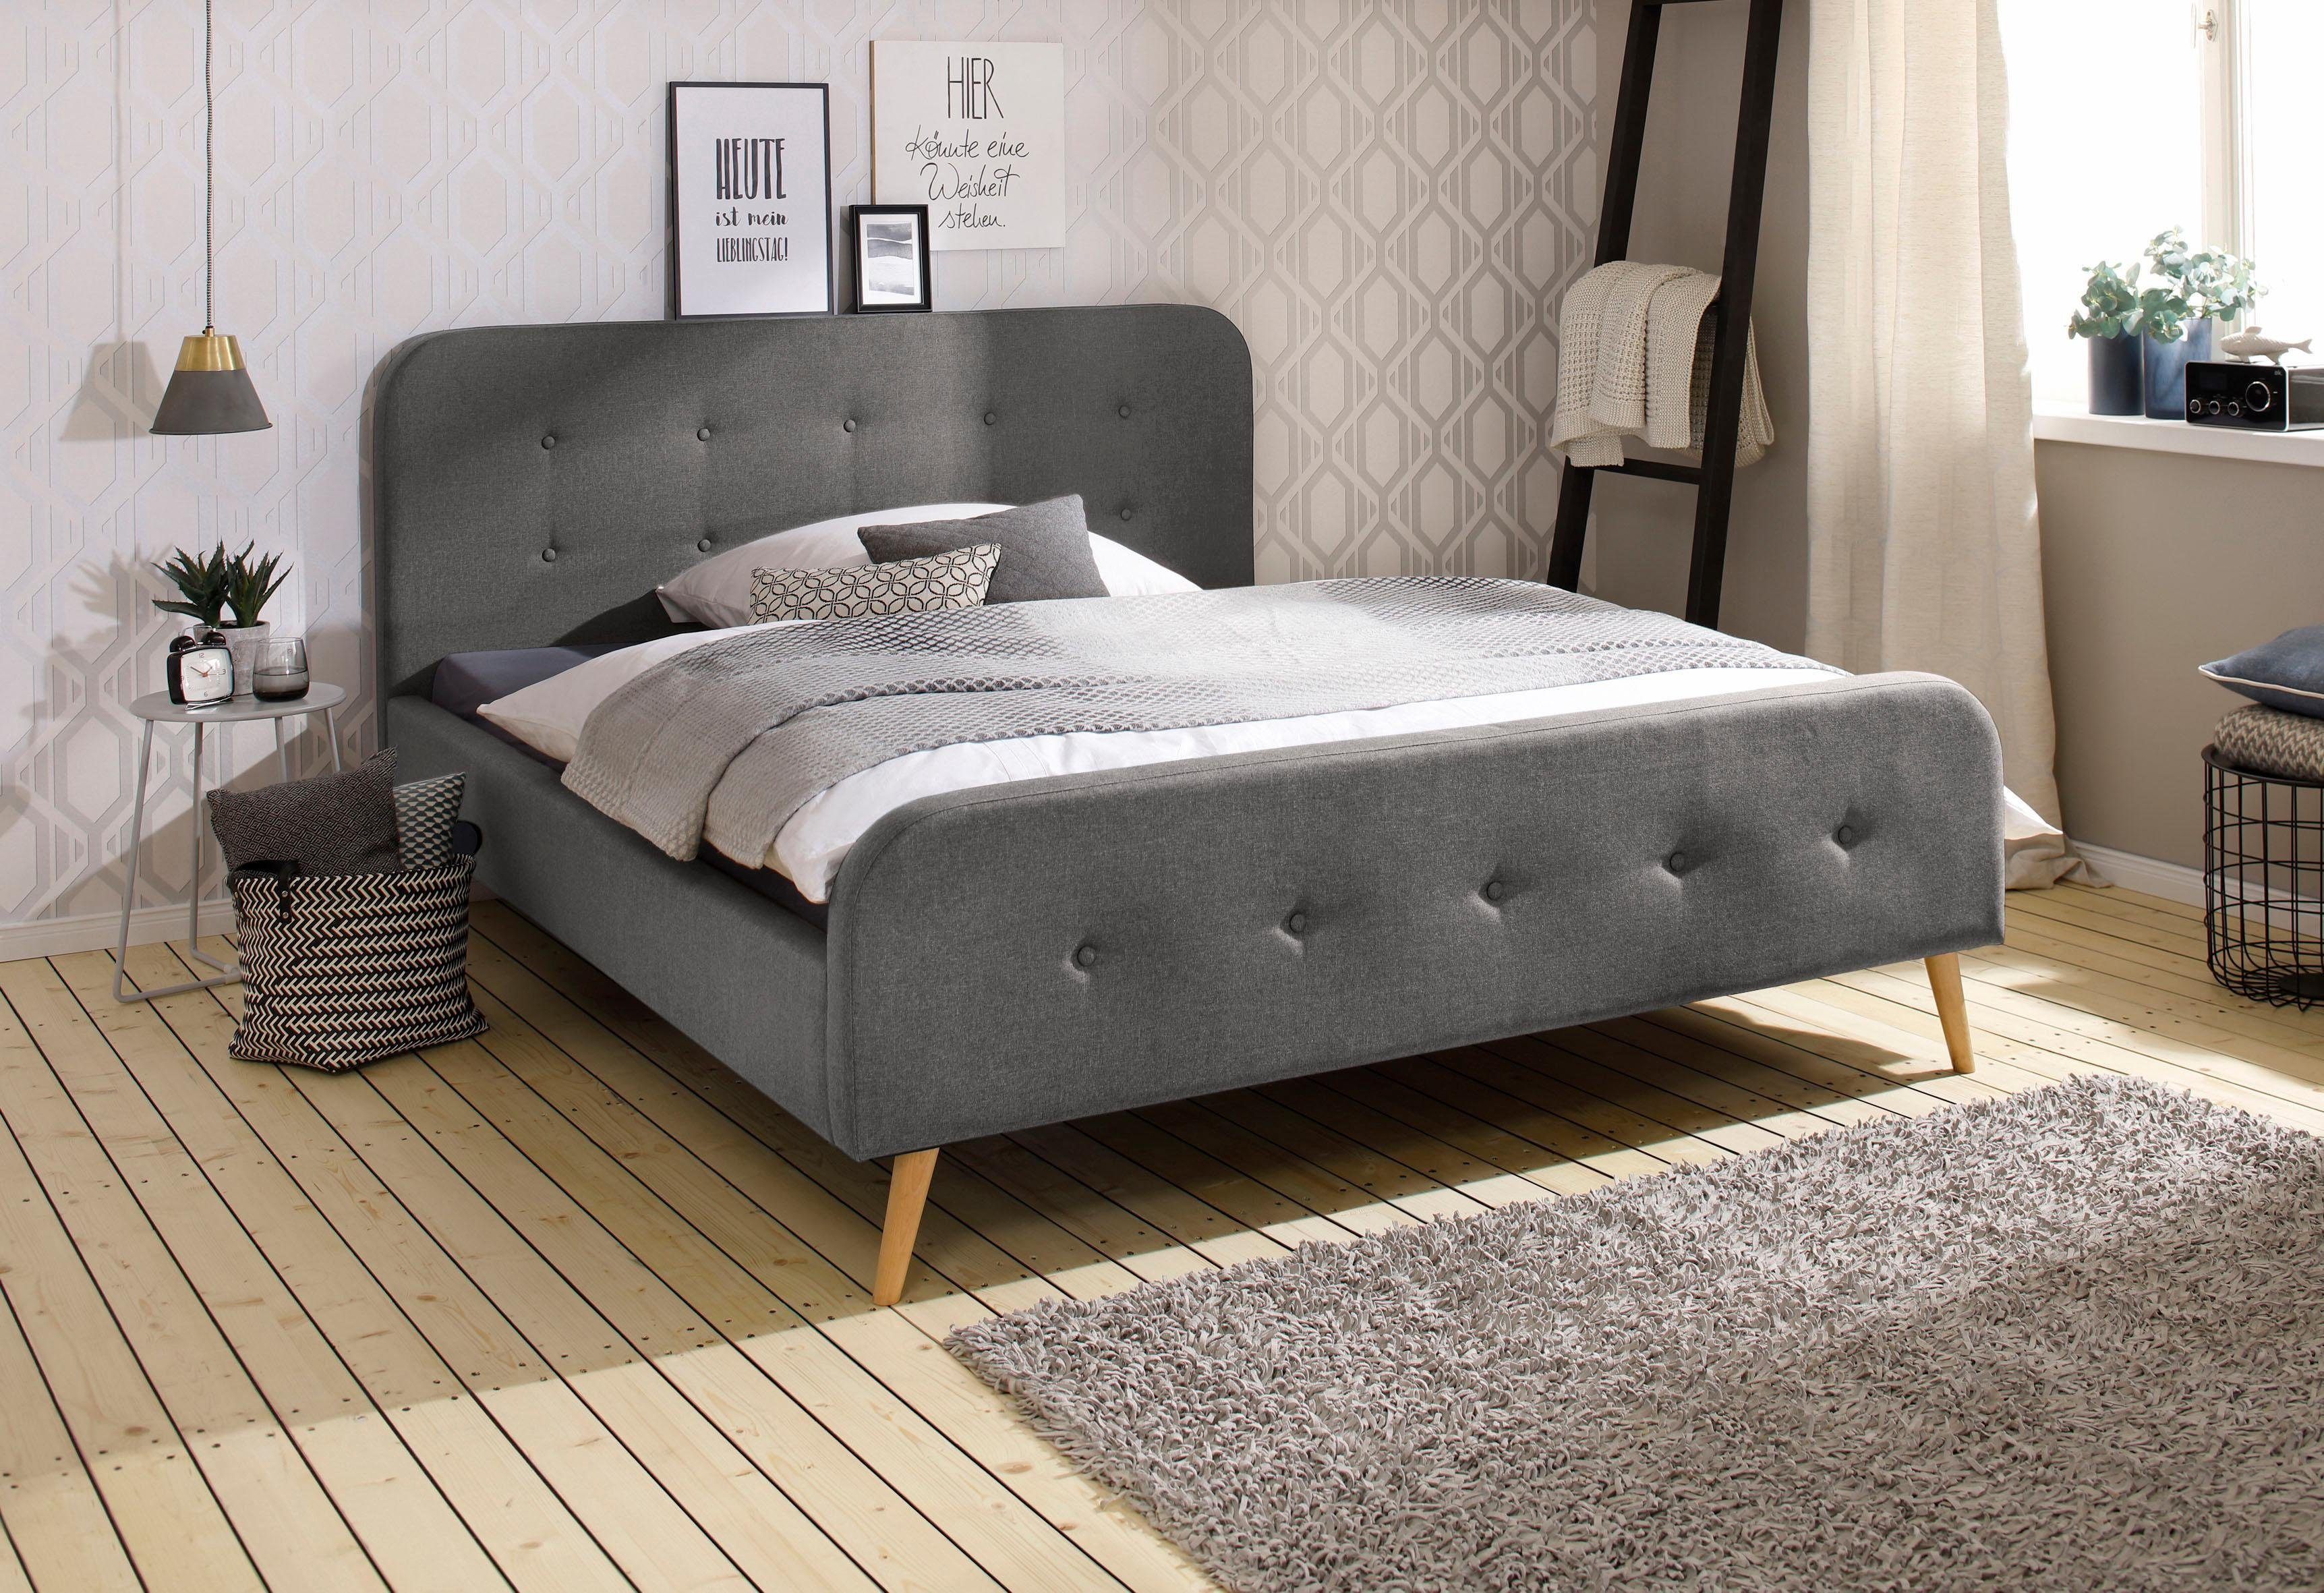 home affaire boxspringbett grau 160 200cm struktur fein amrum fsc zertifiziert alles. Black Bedroom Furniture Sets. Home Design Ideas